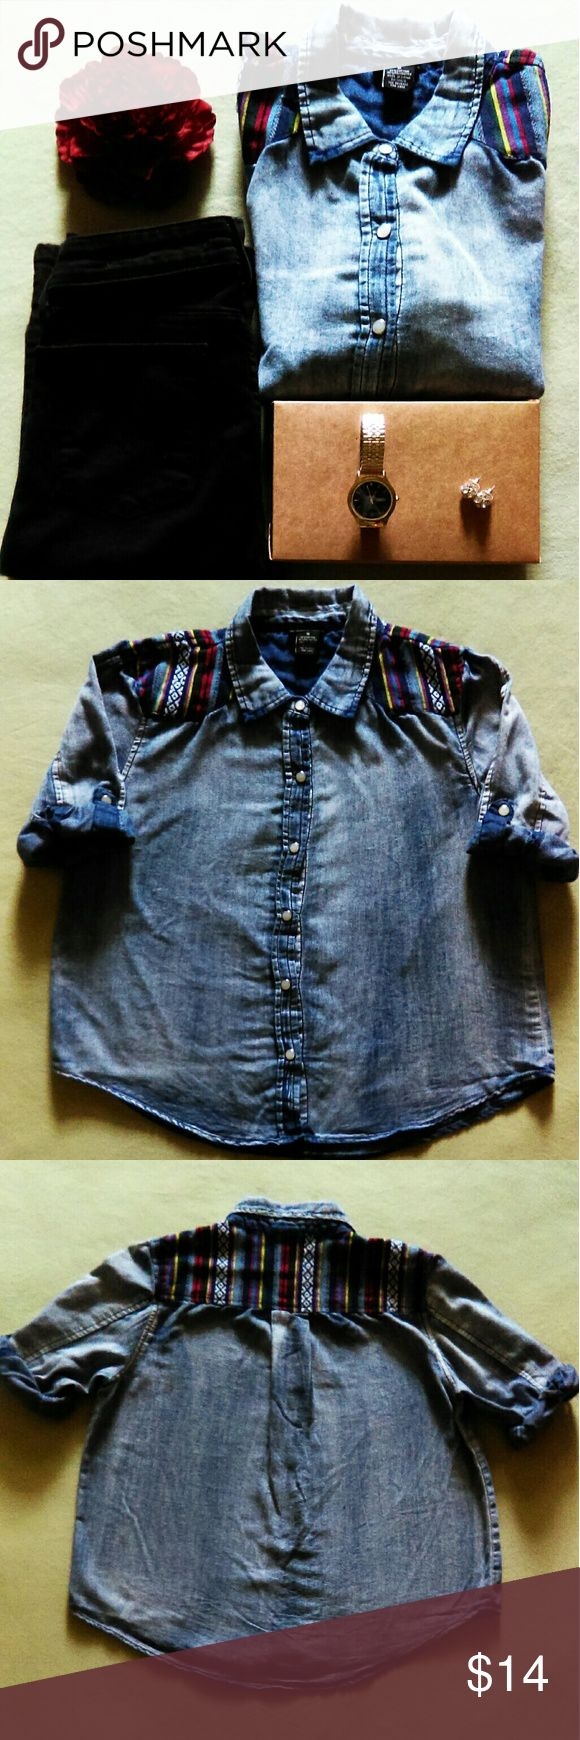 Women's denim tribal shirt Women's denim tribal shirt in a size medium but this can also fit a size small. In excellent condition. It has a gorgeous multicolored tribal pattern along with faux mother of pearl buttons on the front as well as on the sleeves. It has an intentional distressed look to the denim. The sleeves can either be worn long or rolled up to a 3/4 inch sleeve. Rue21 Tops Button Down Shirts